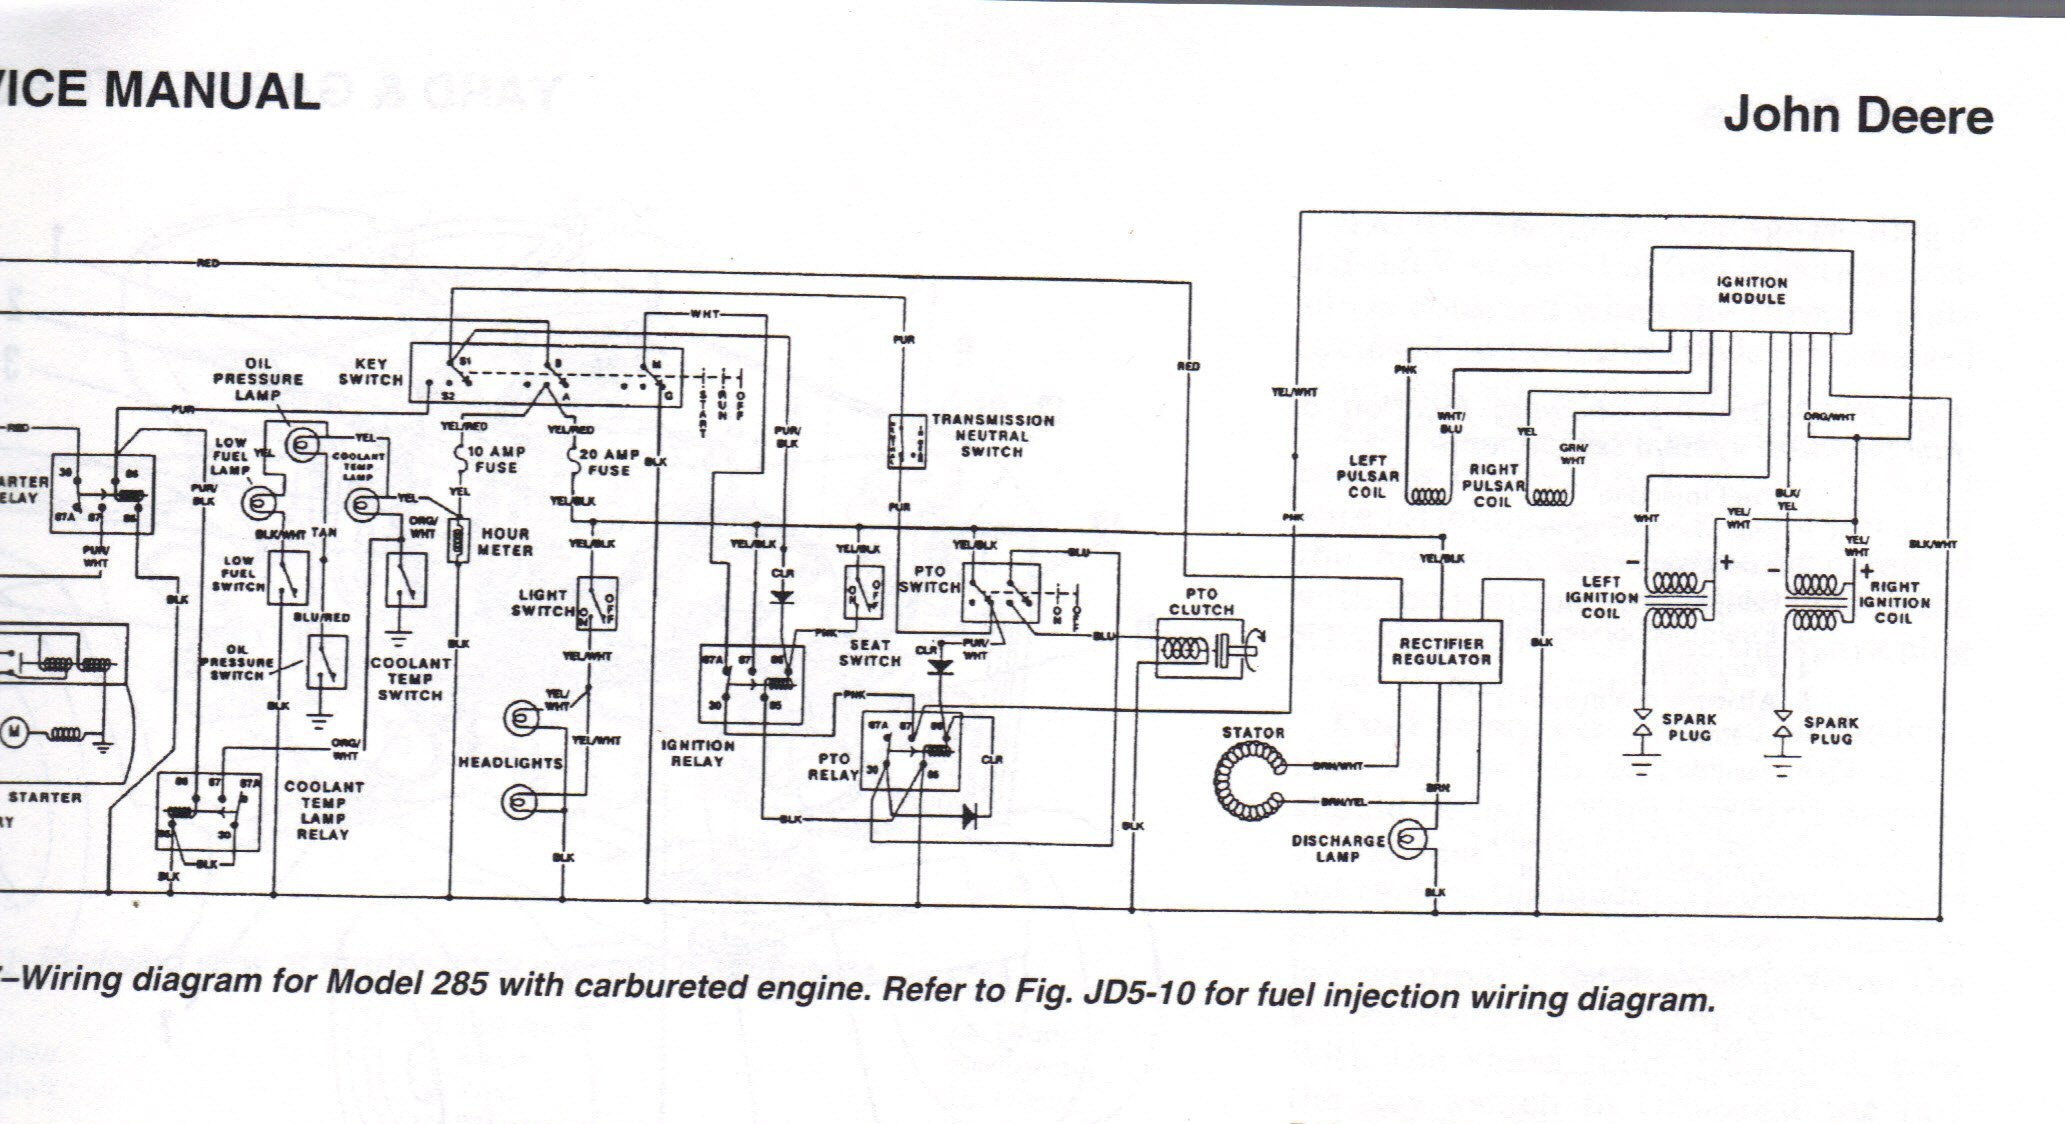 john deere wiring diagrams case 444 wiring diagram wiring